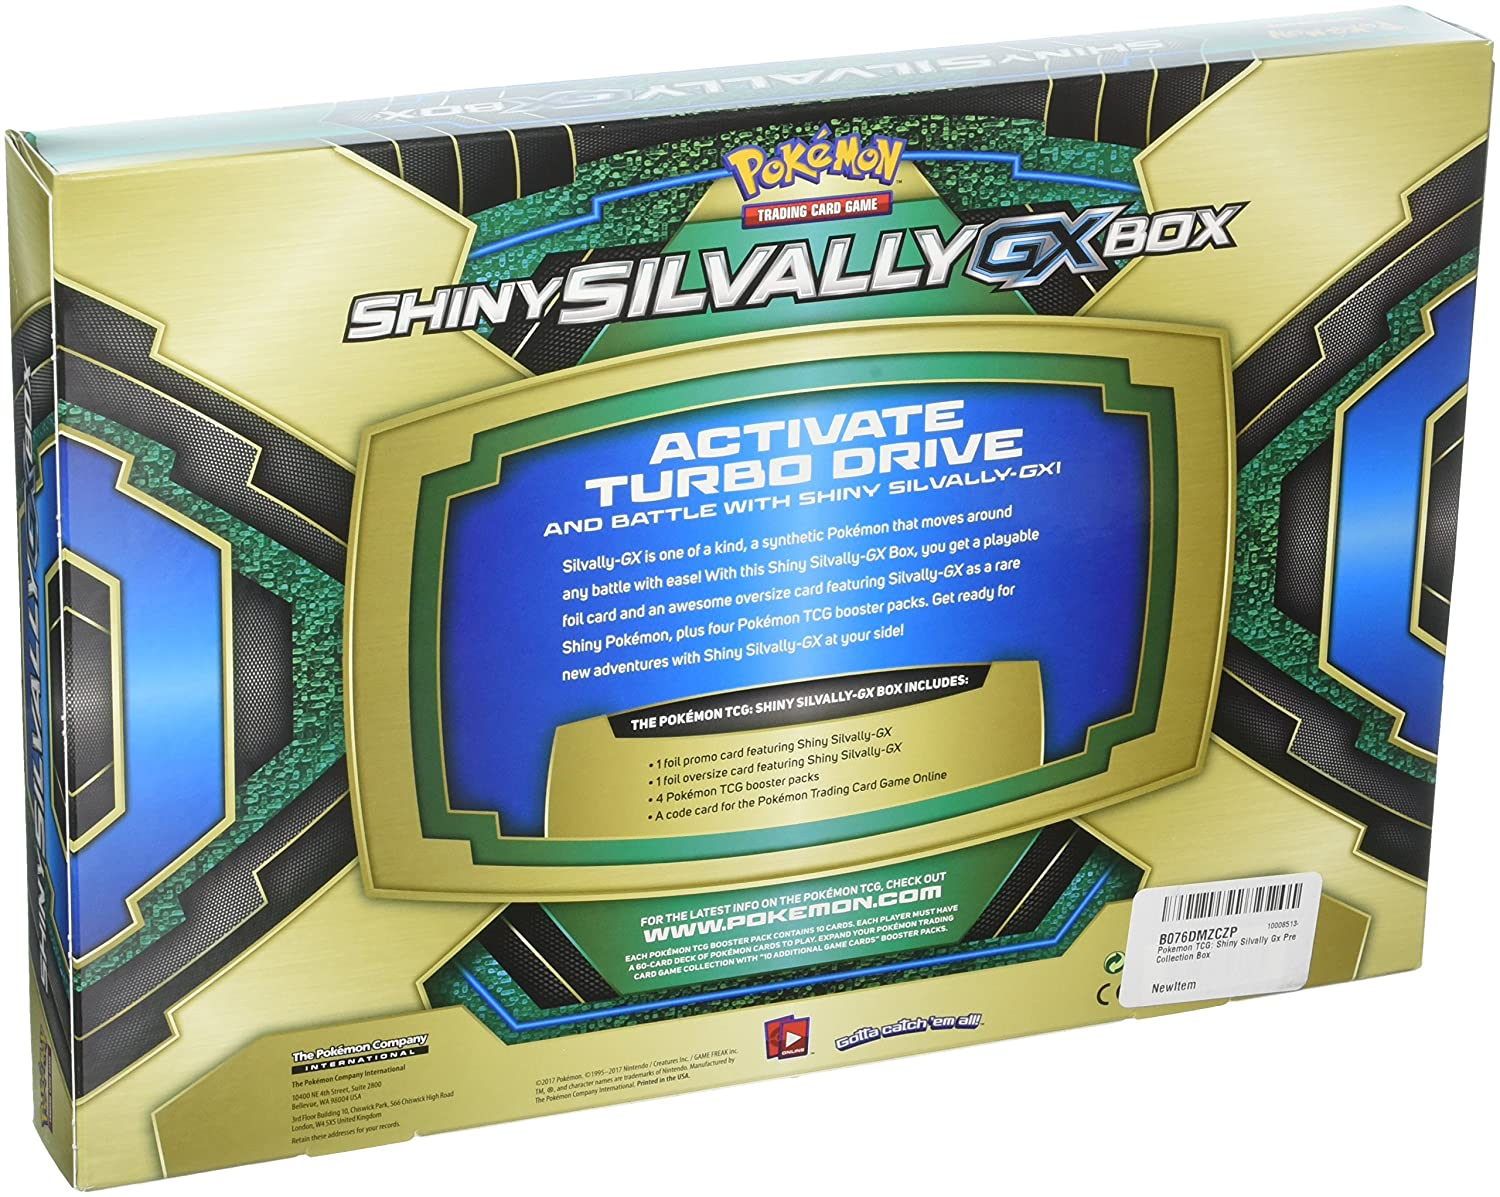 Pokemon Tcg Shiny Silvally Gx Premium Collection Box Ama Zon Plus Toys Games